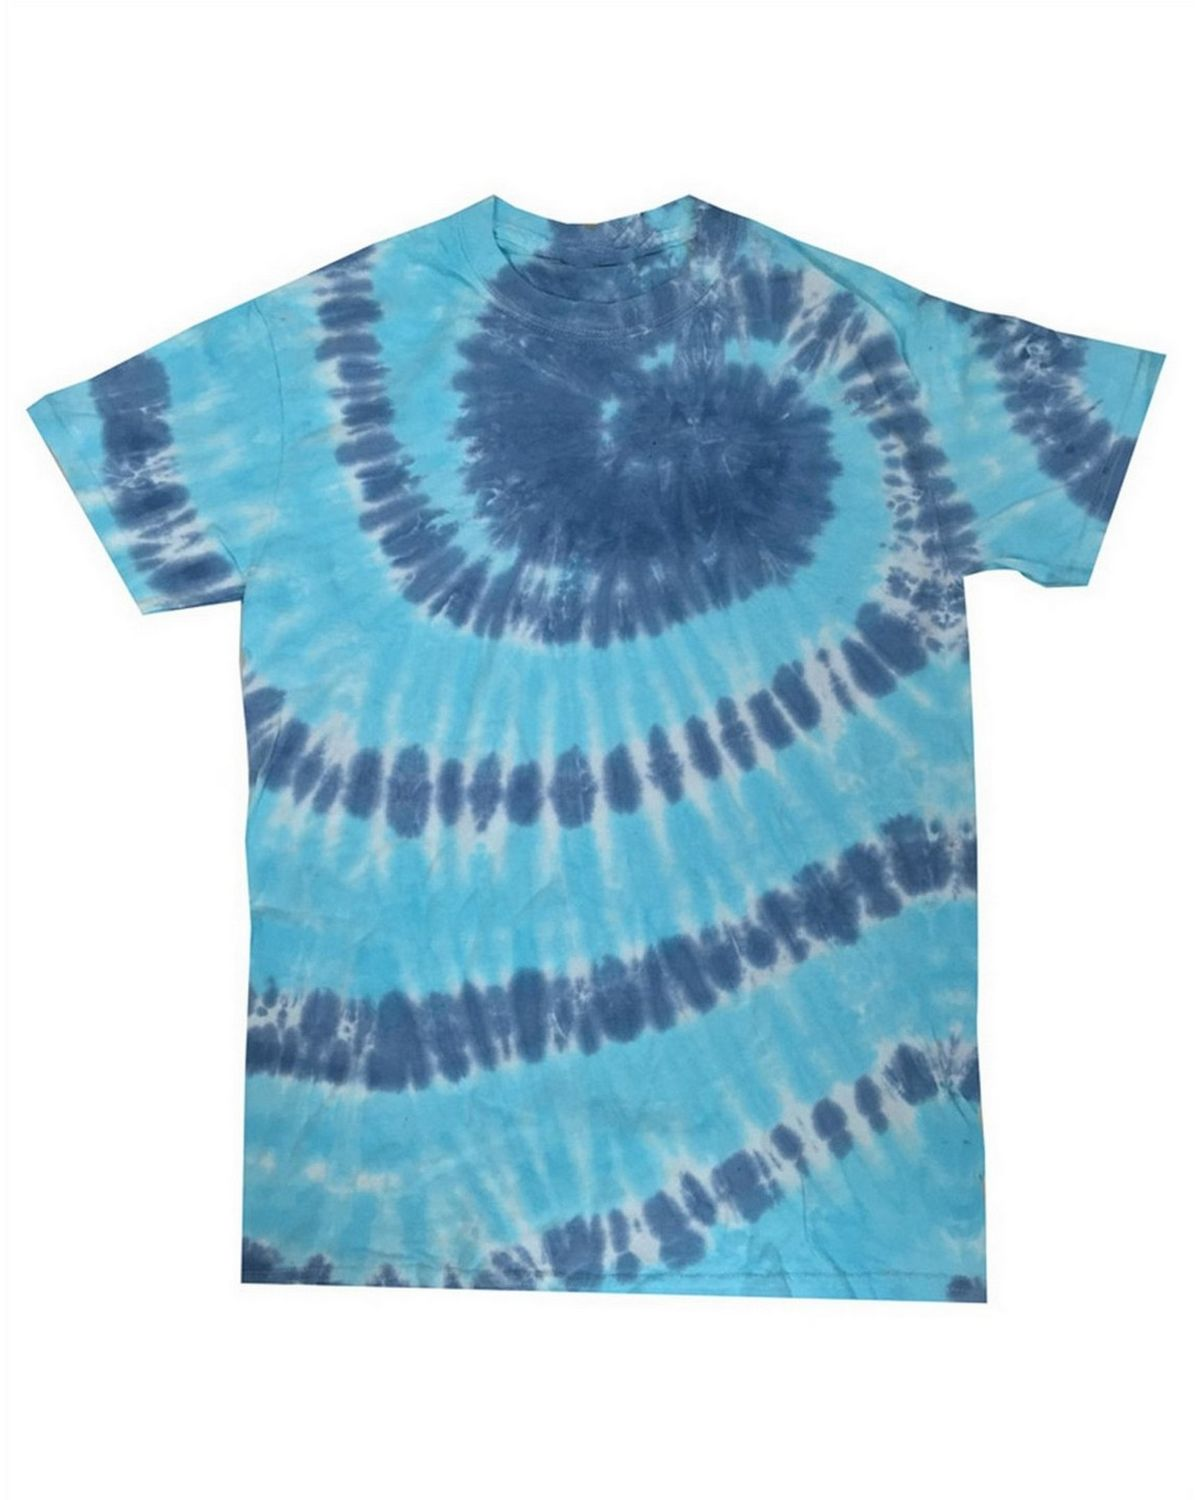 Tie-Dye CD100Y Youth 100% Cotton Tie-Dyed T-shirt - ApparelnBags.com